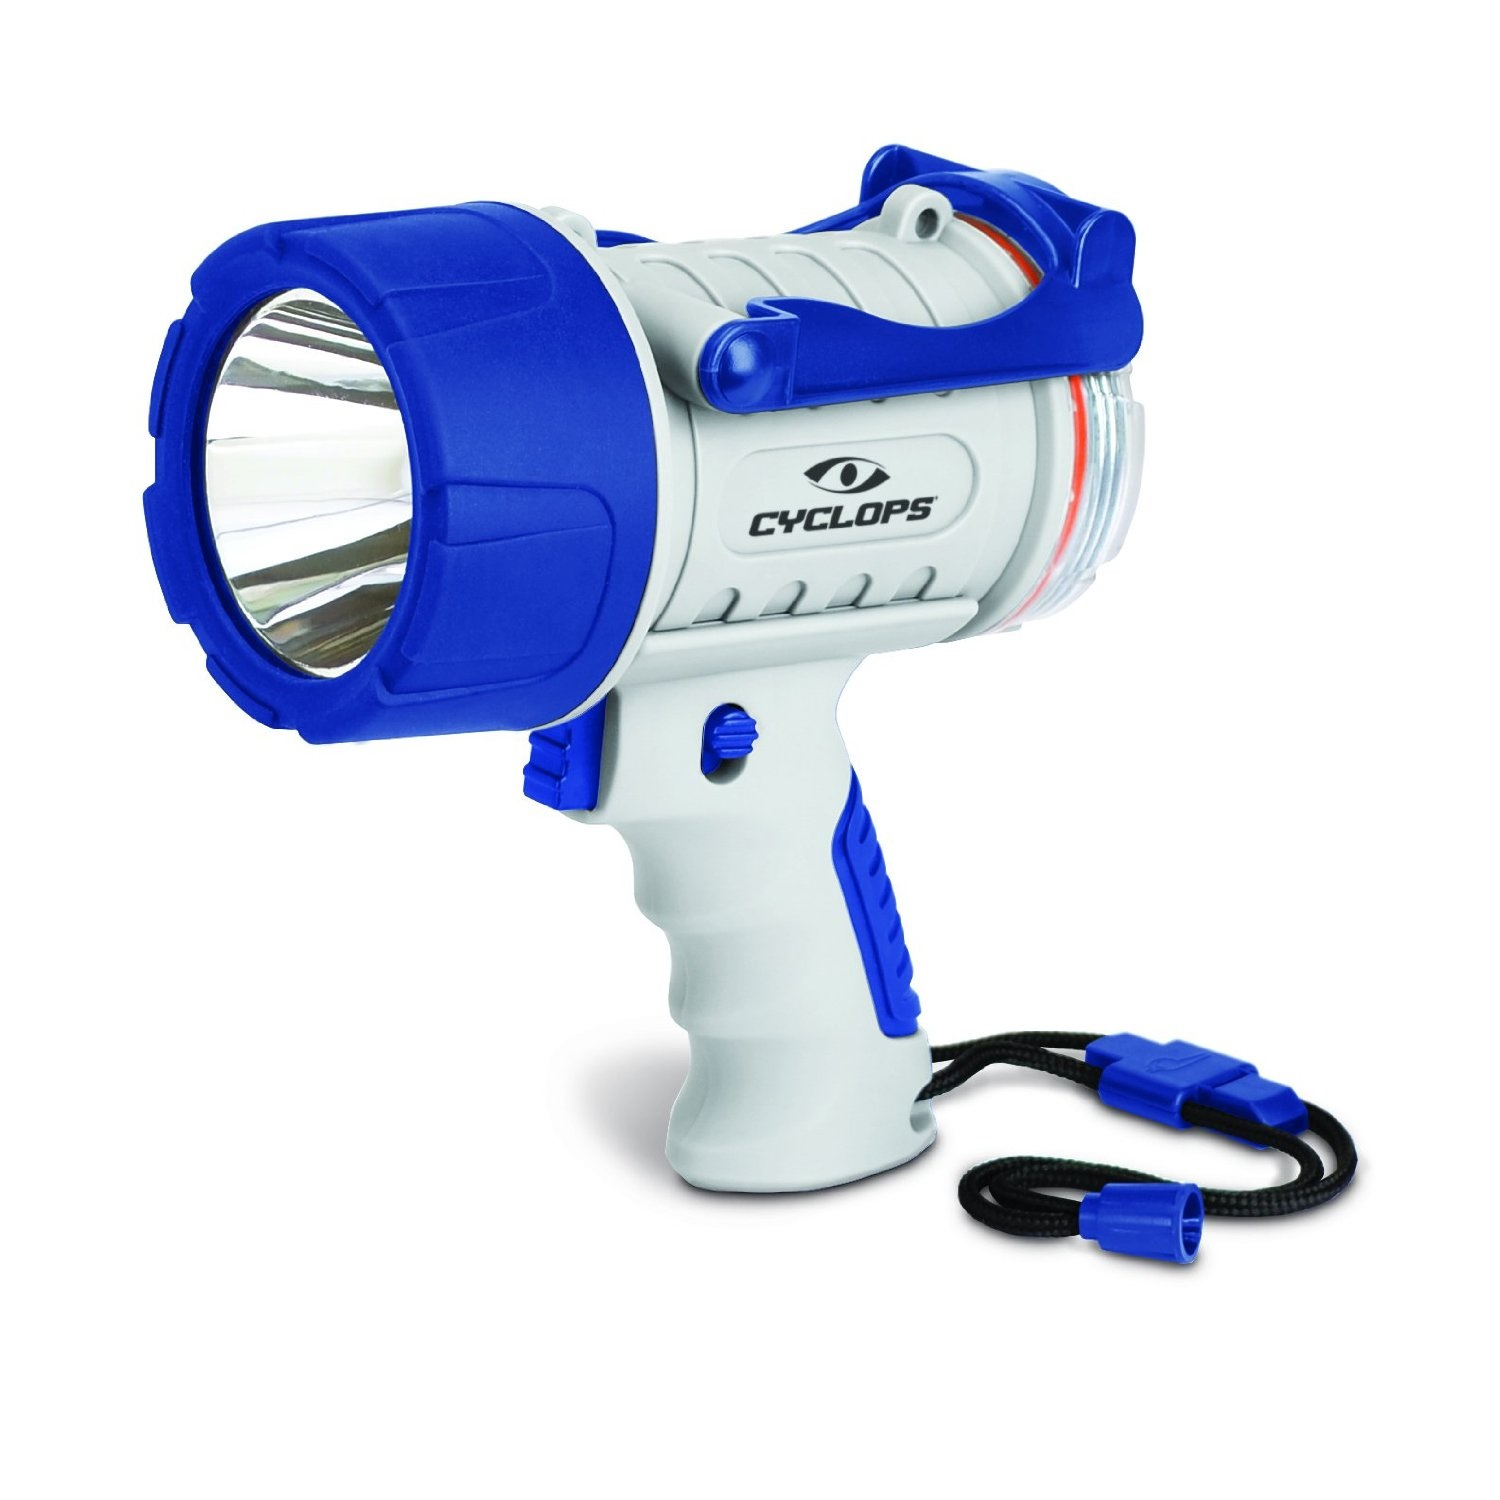 Cyclops 300 Lumen Rechargeable Waterproof Spotlight, Marine